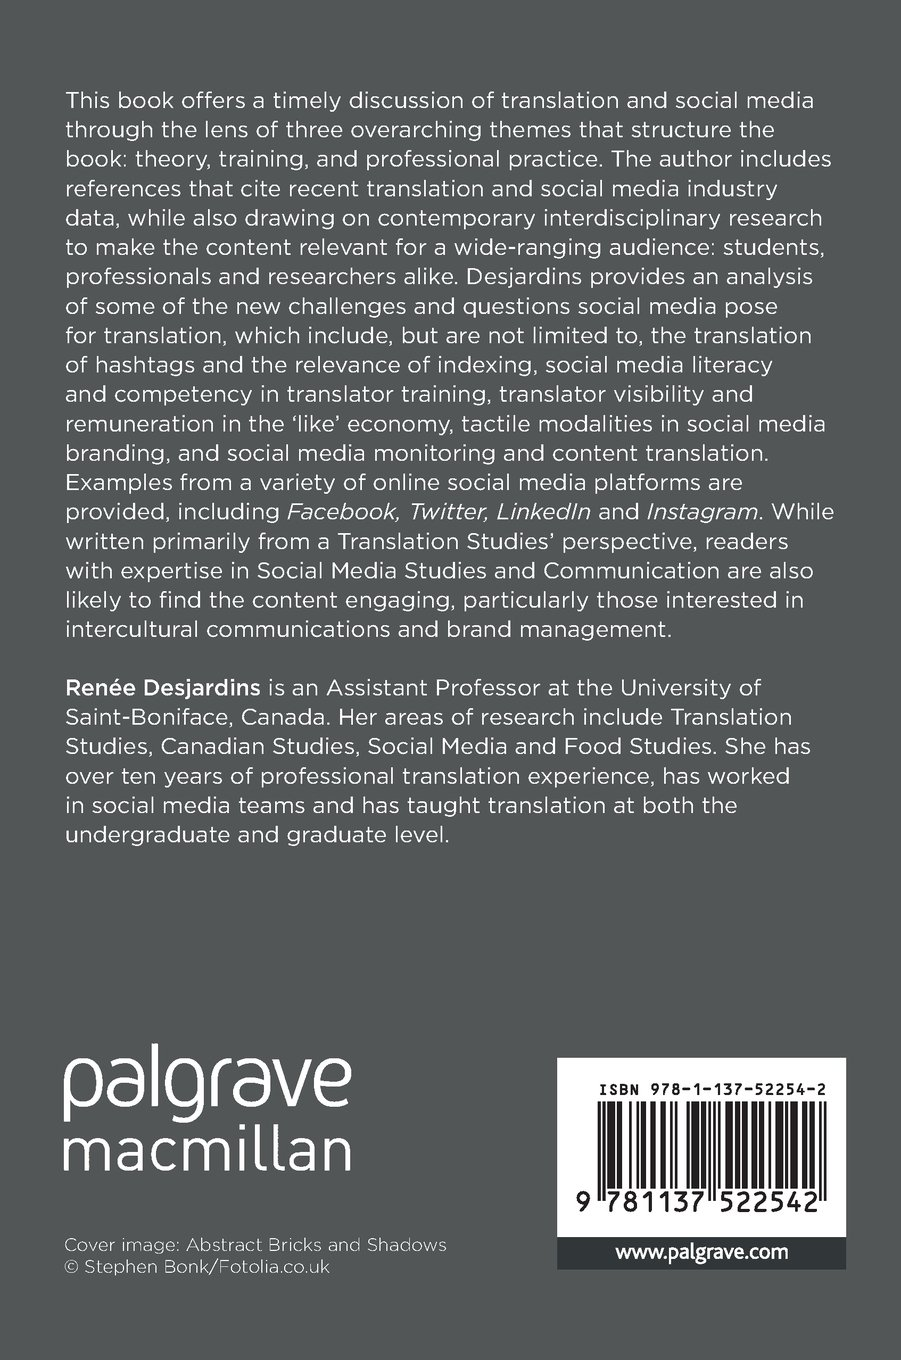 Translation and Social Media: In Theory, in Training and in Professional Practice (Palgrave Studies in Translating and Interpreting)